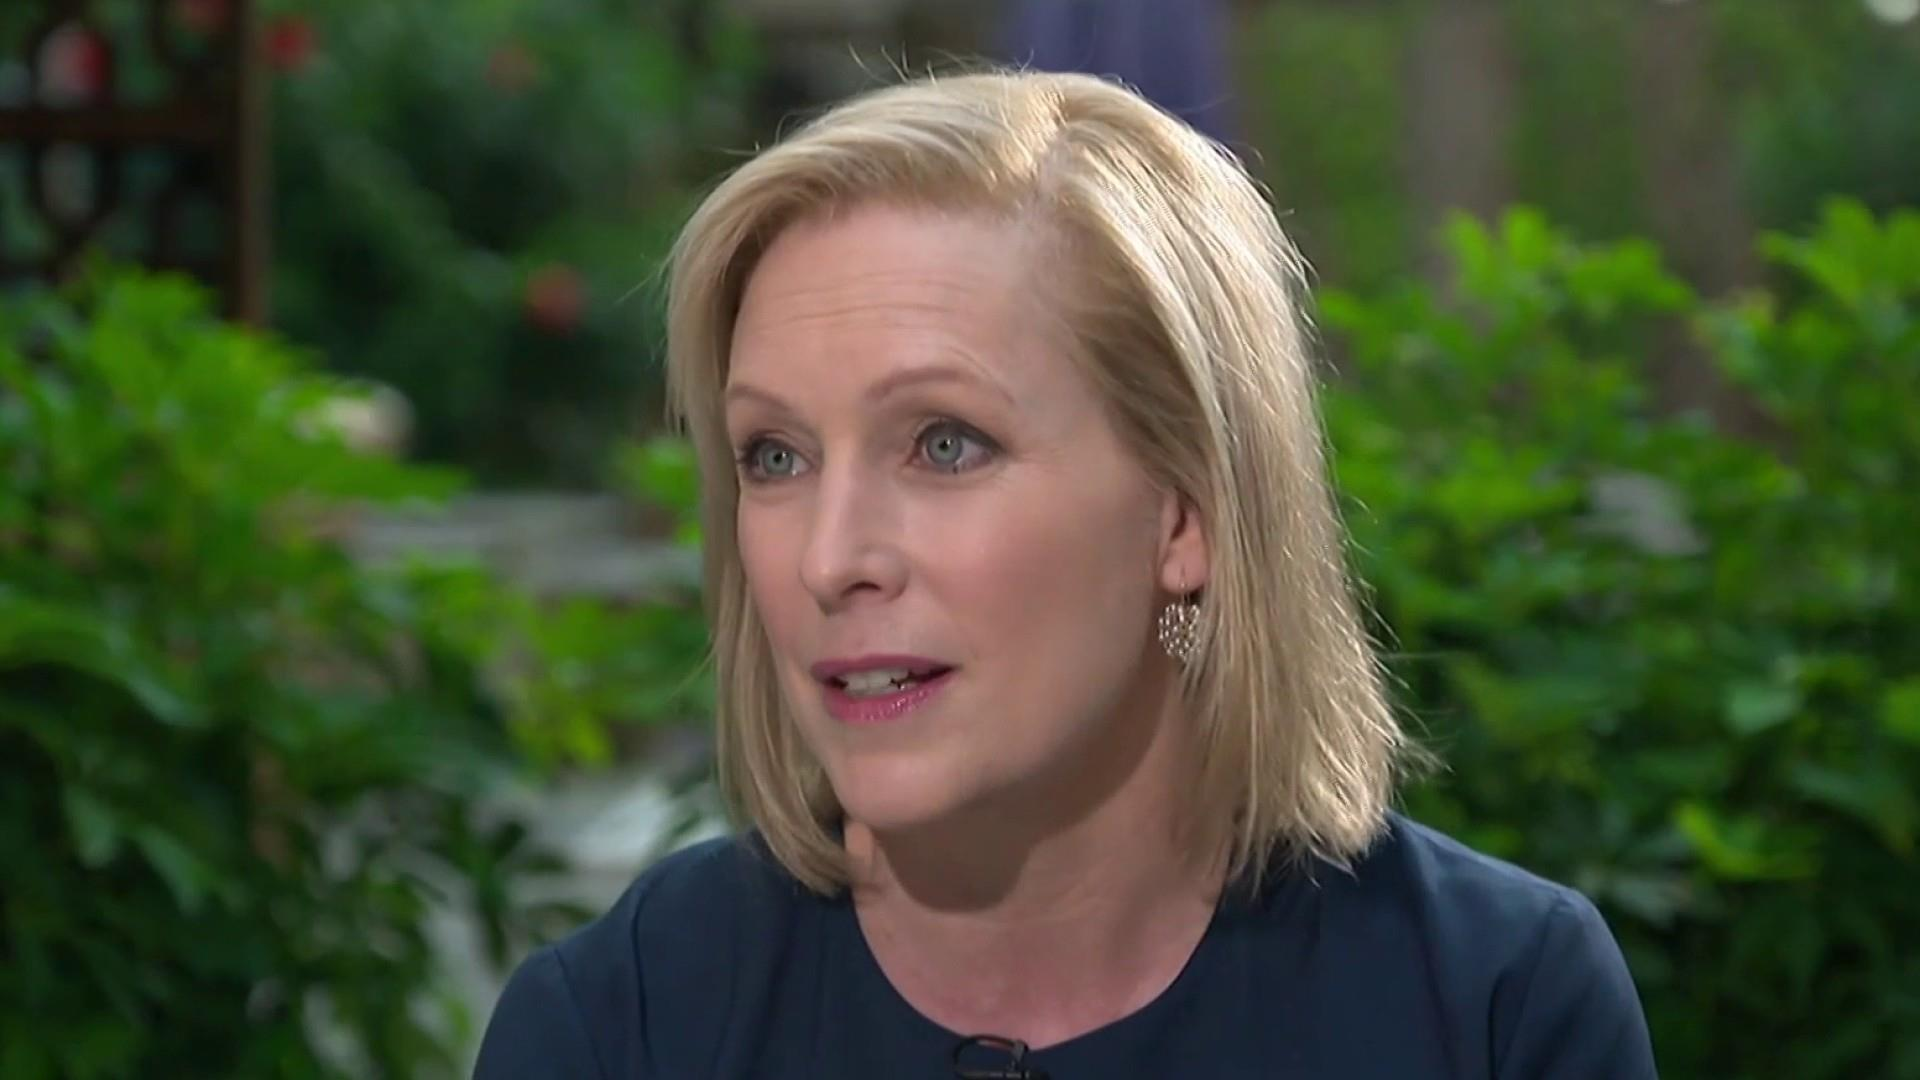 Sen. Kirsten Gillibrand tries to make dent in pack, says 'the candidates have followed me' on issues